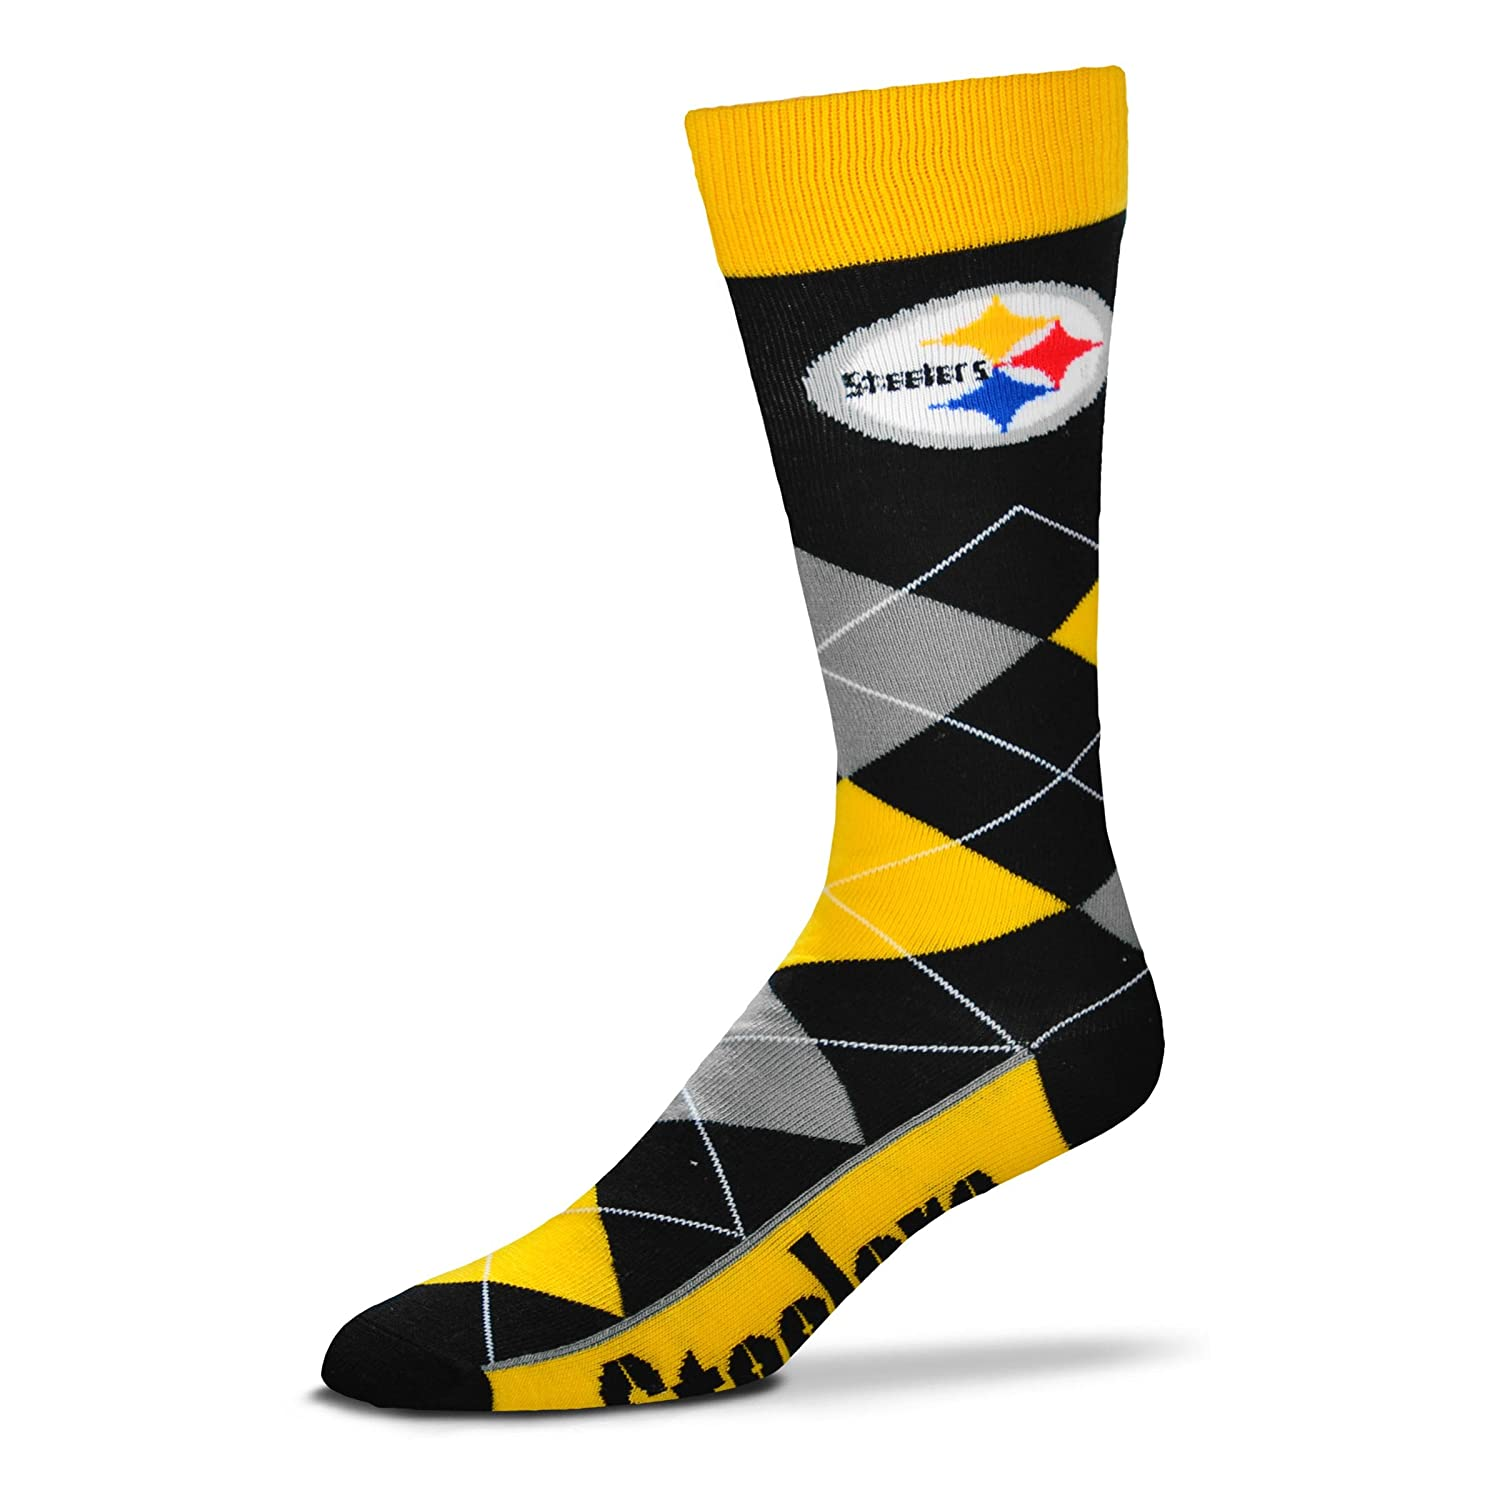 competitive price 3925f 13be2 Amazon.com   NFL Pittsburgh Steelers Argyle Unisex Crew Cut Socks - One  Size Fits Most   Clothing